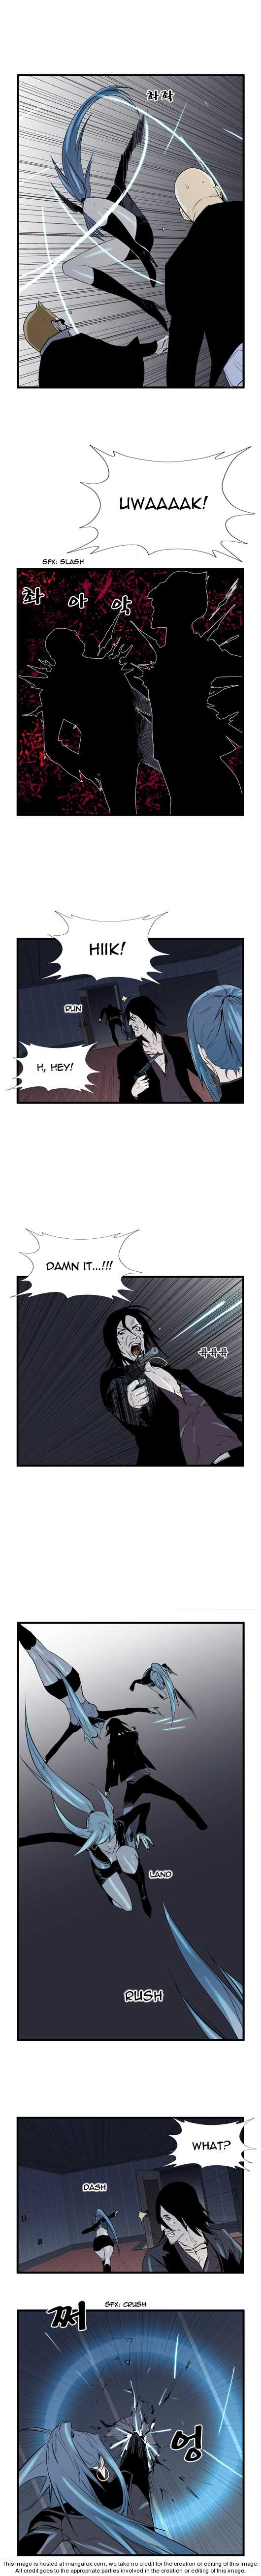 Noblesse 58 Page 4